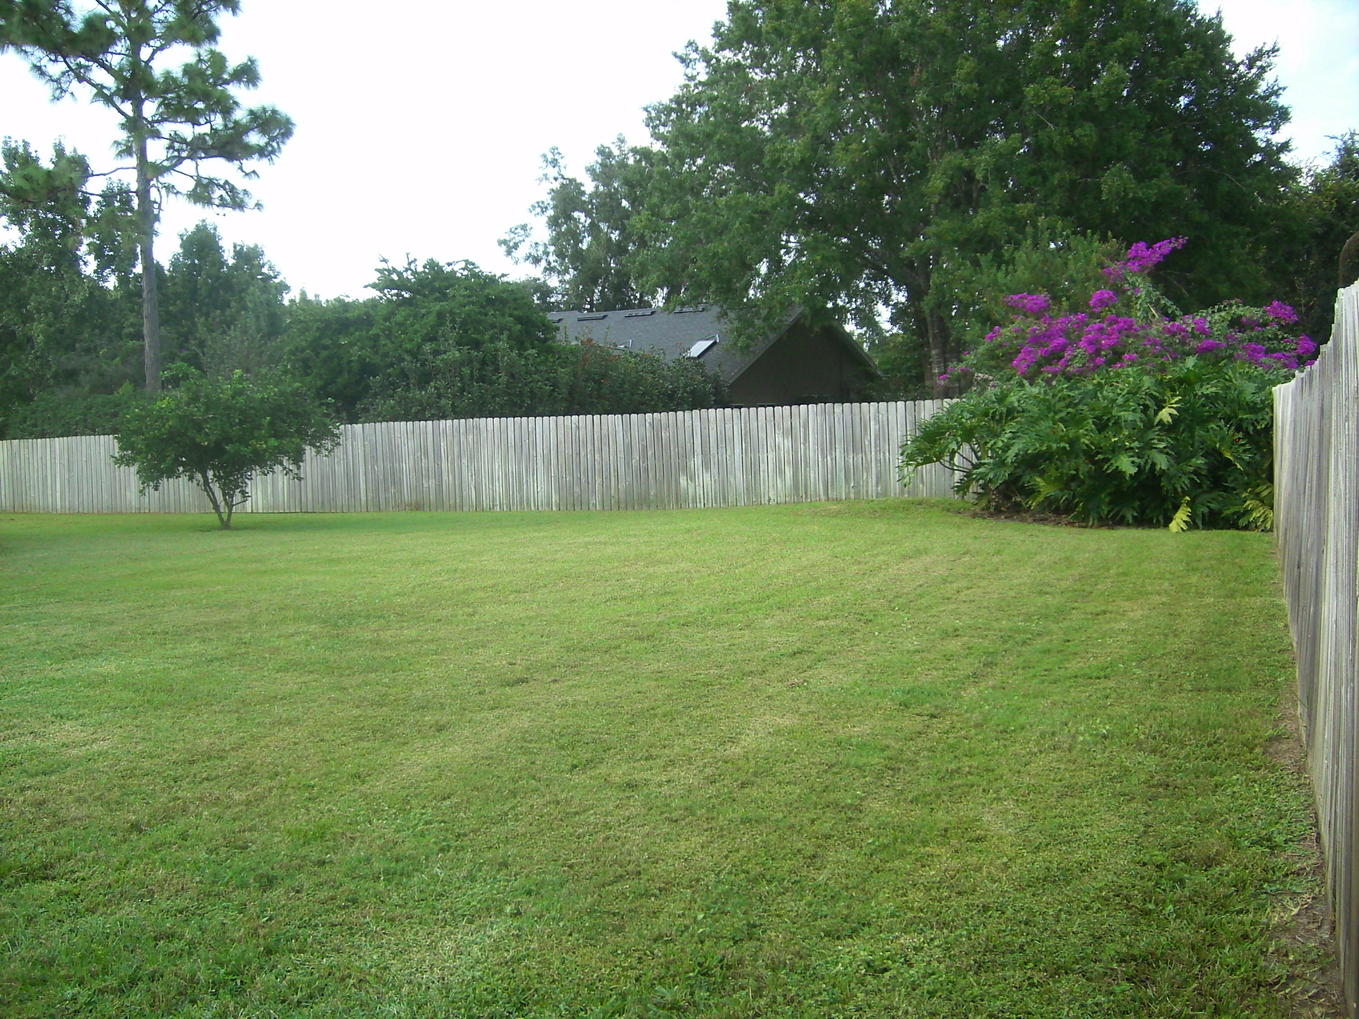 Superb Lush Backyard  Please Contact Me At Regina20003@yahoo.com Or Via Cell @